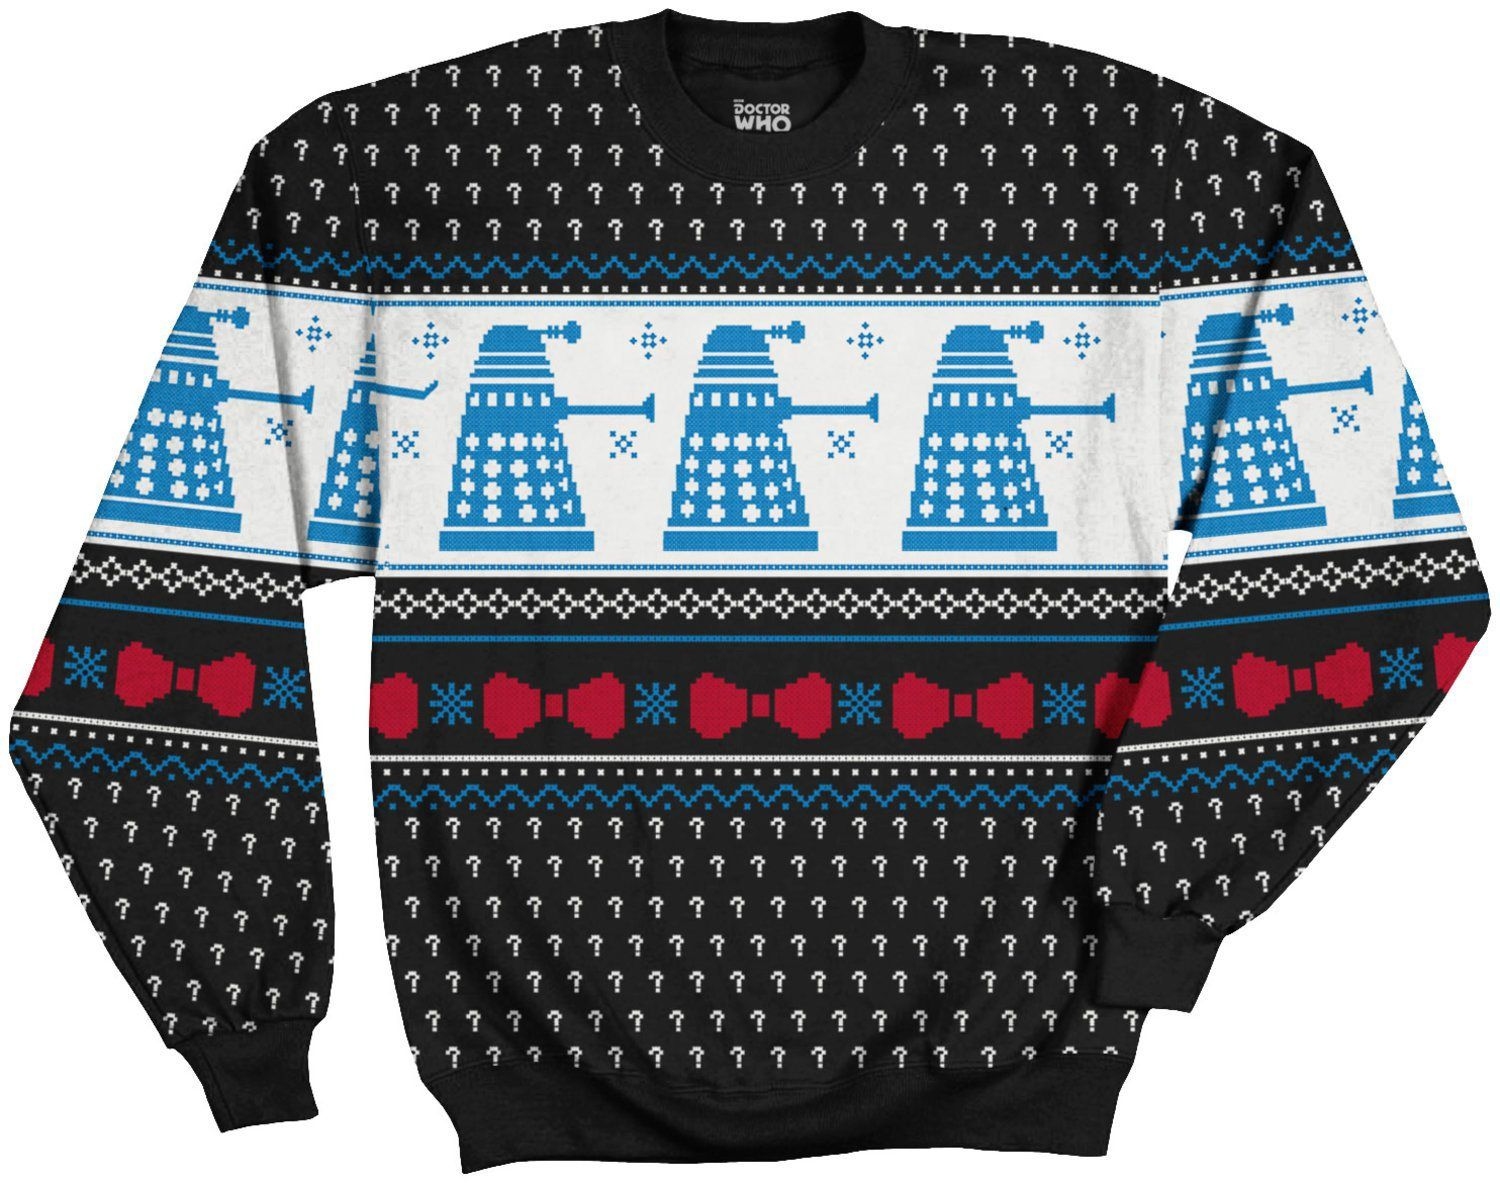 Dr Who Christmas Sweater.Pin On Be Cool Like The Doctor Doctor Who